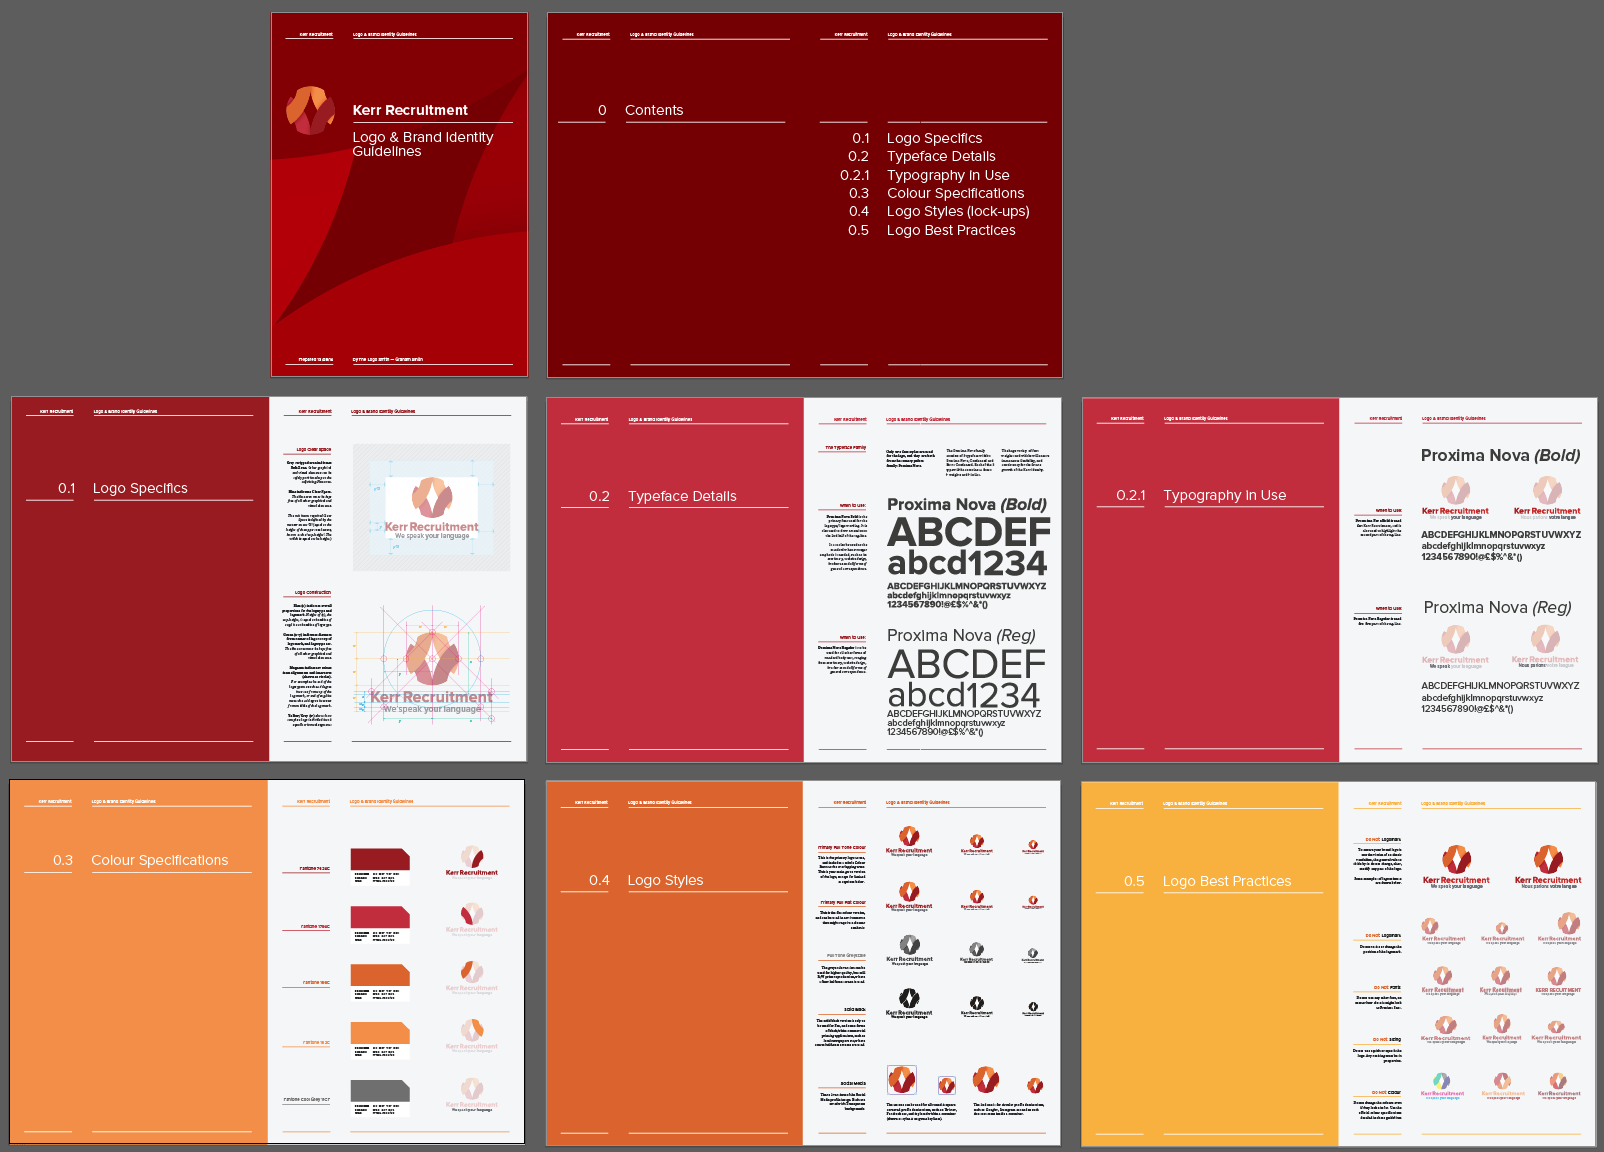 logo and brand identity guidelines template collected by http www rotterdam vormgeving nl